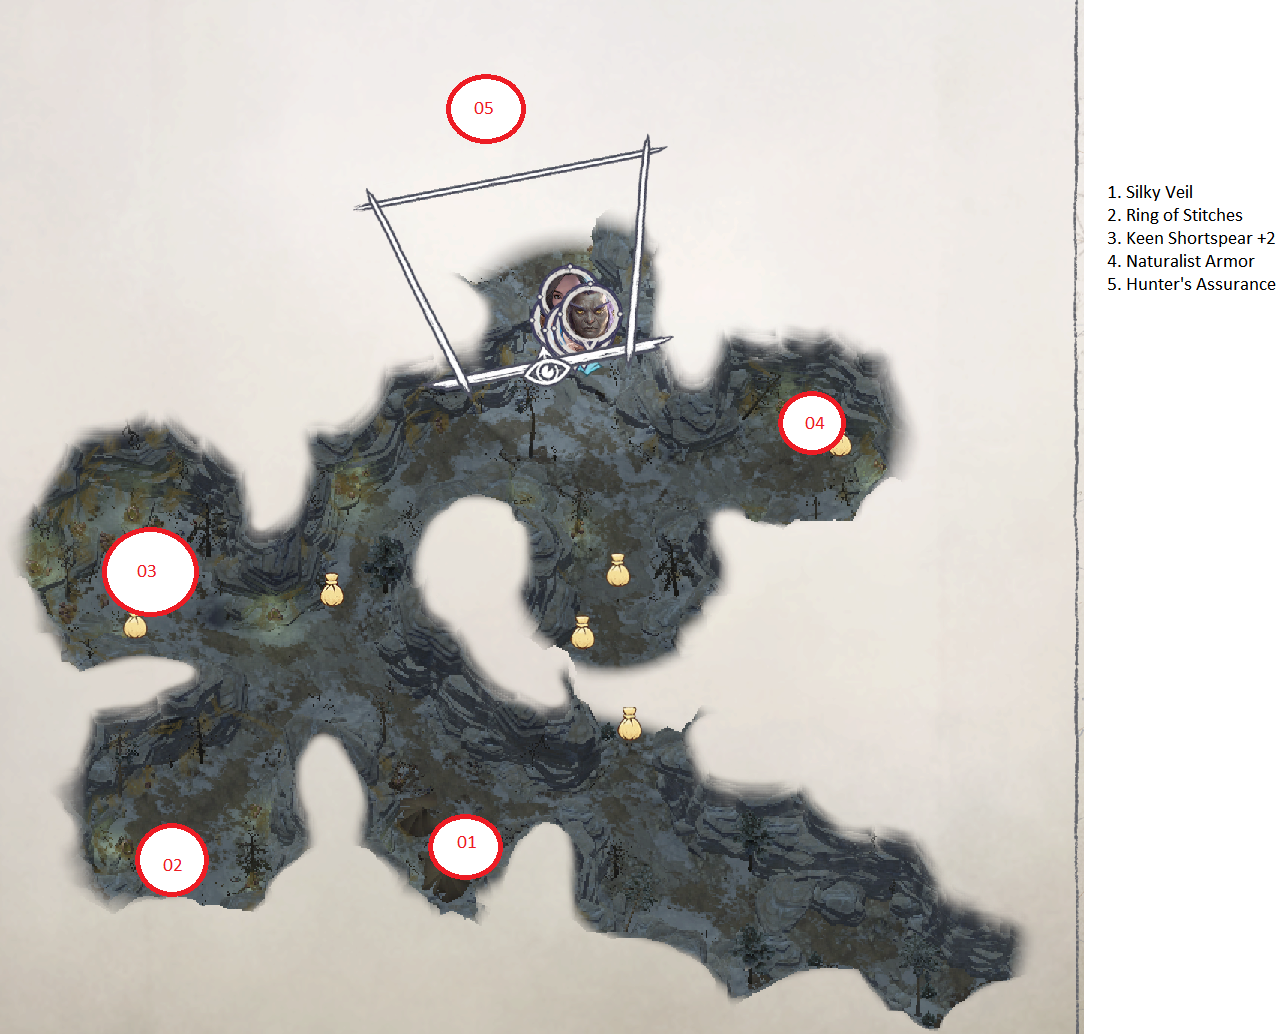 Pathfinder: Wrath of the Righteous All Items Location in Cave Map Guide - Ch. 2 Item Locations - 9782155